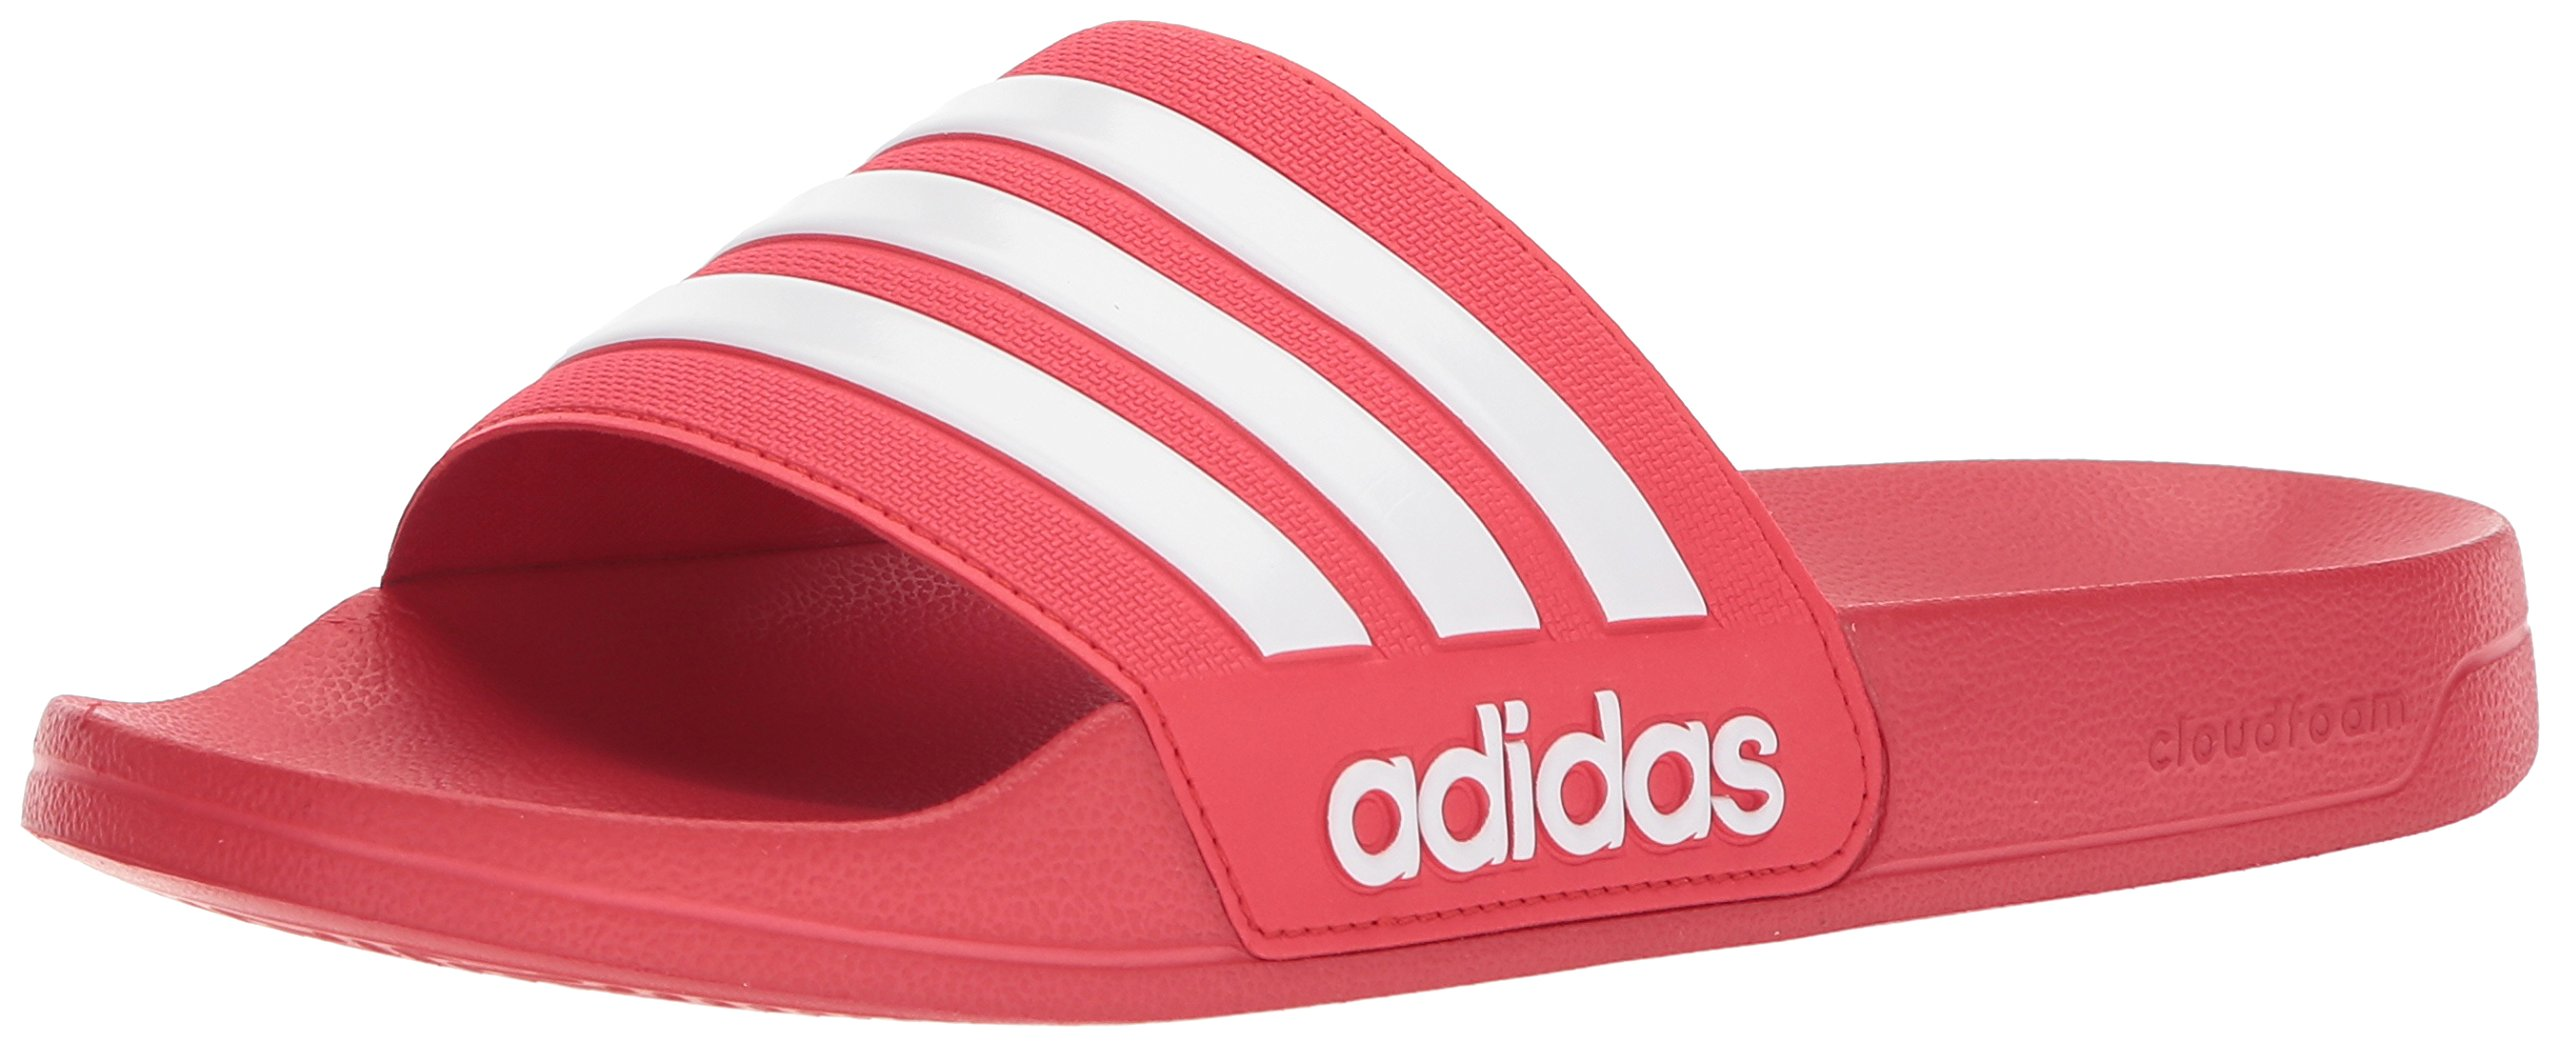 adidas Men's Adilette Shower Slide Sandal, Scarlet/White/Scarlet, 13 M US by adidas